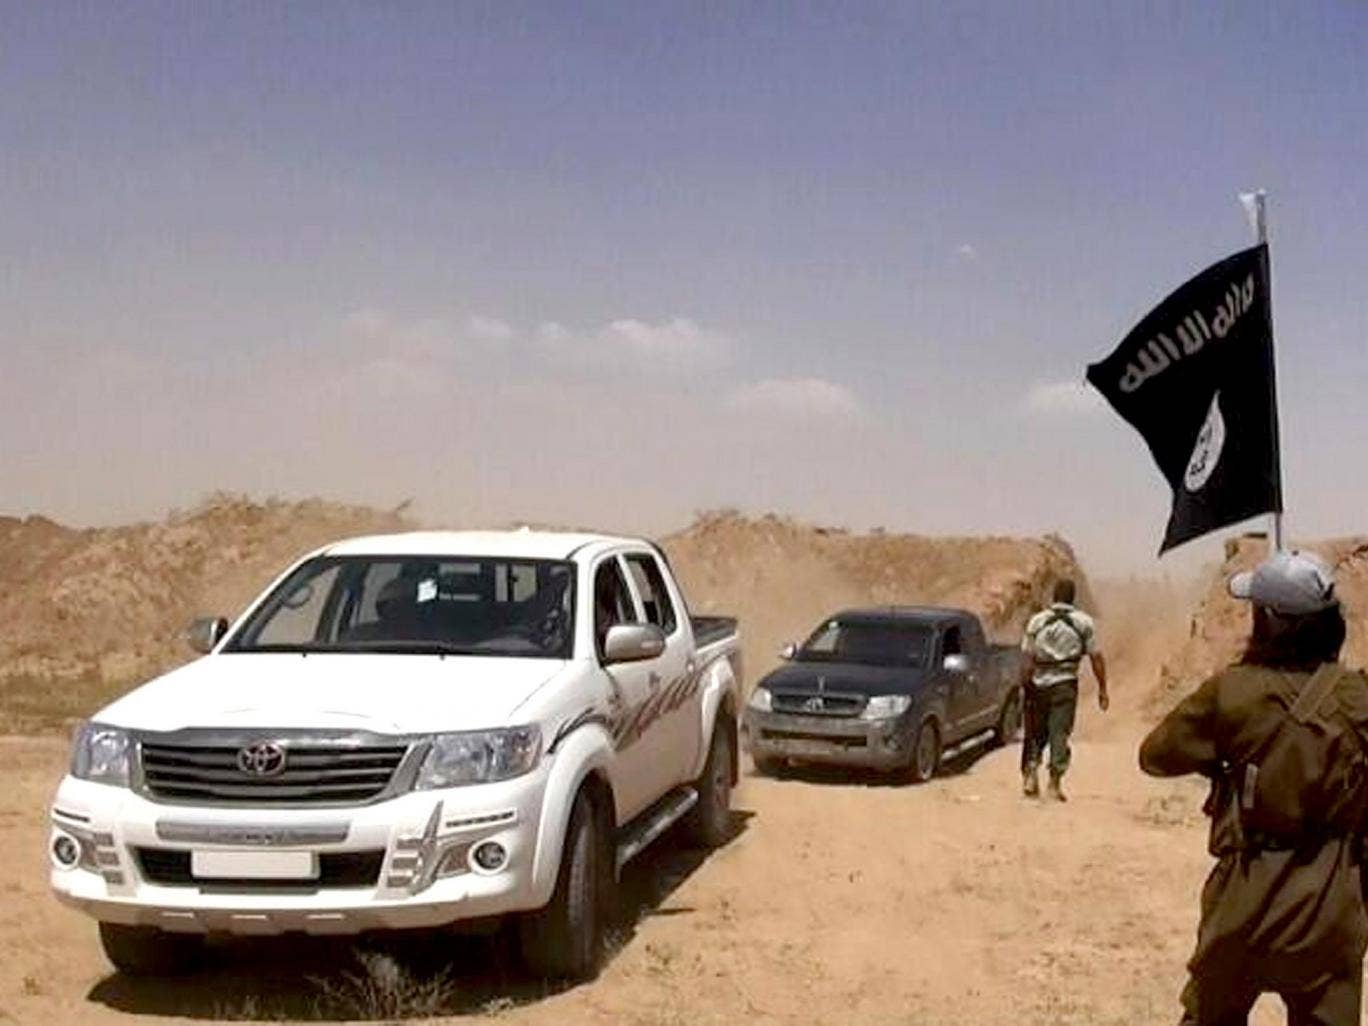 Militants from the Islamic State of Iraq and the Levant (ISIL) remove part of the soil barrier on the Iraq-Syria borders and move through it